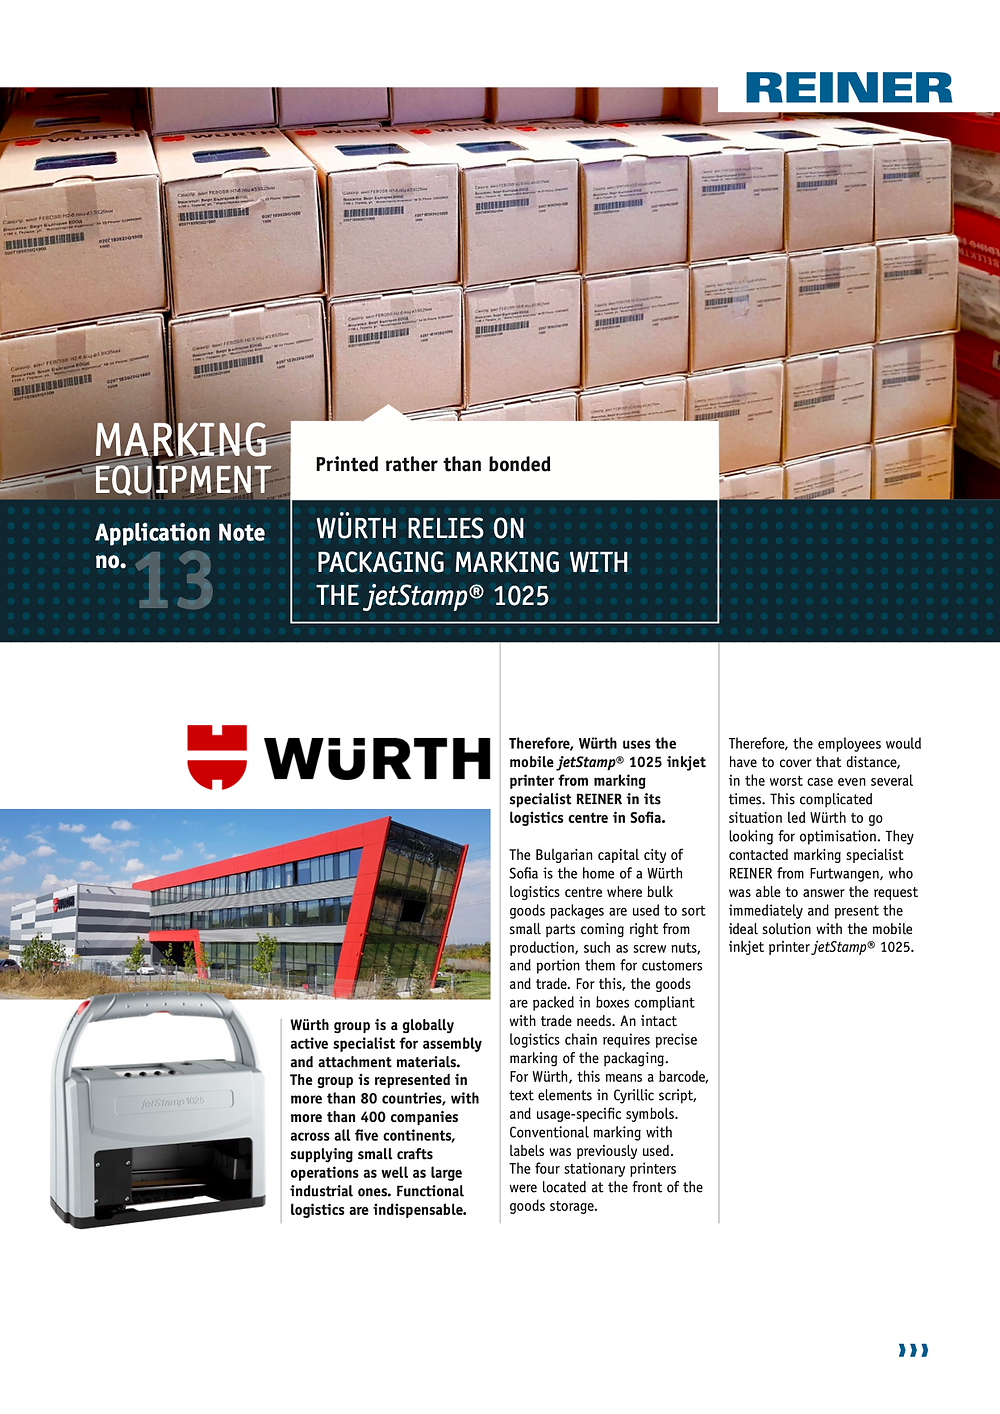 Würth - Sofia uses jetStamp® 1025 for its box coding operations